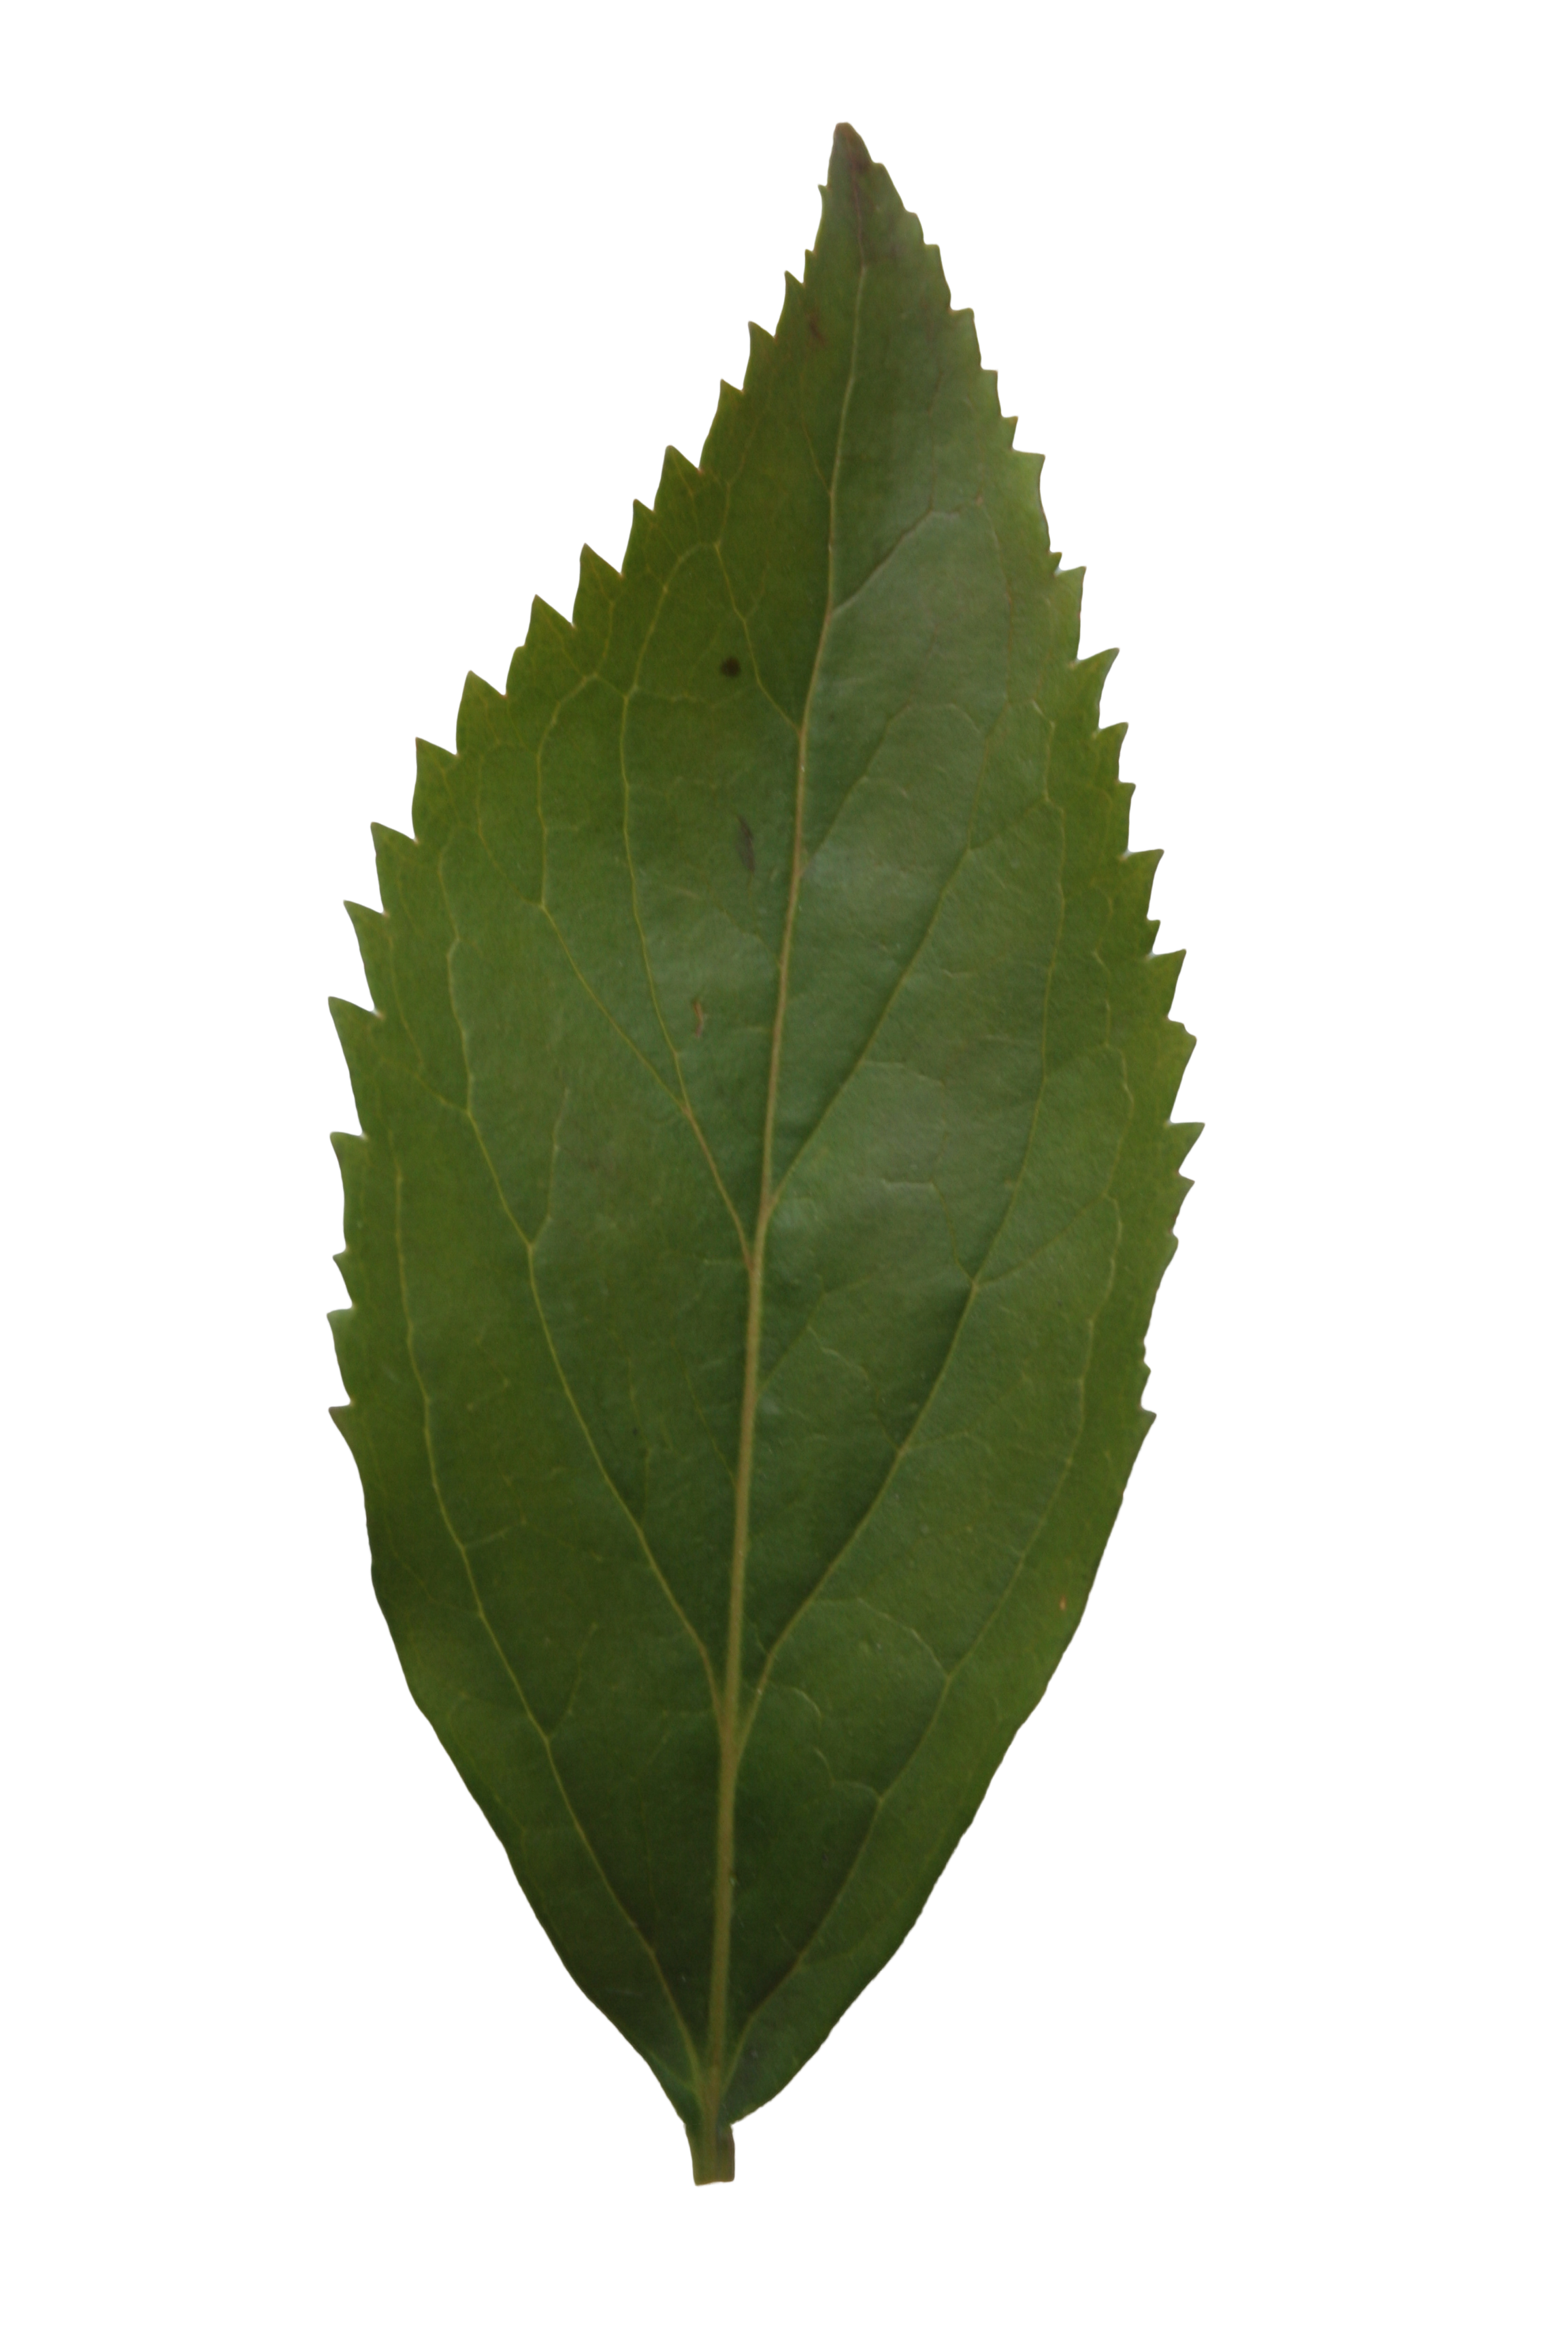 Ash leaf texture | Free Cut Out people, trees and leaves